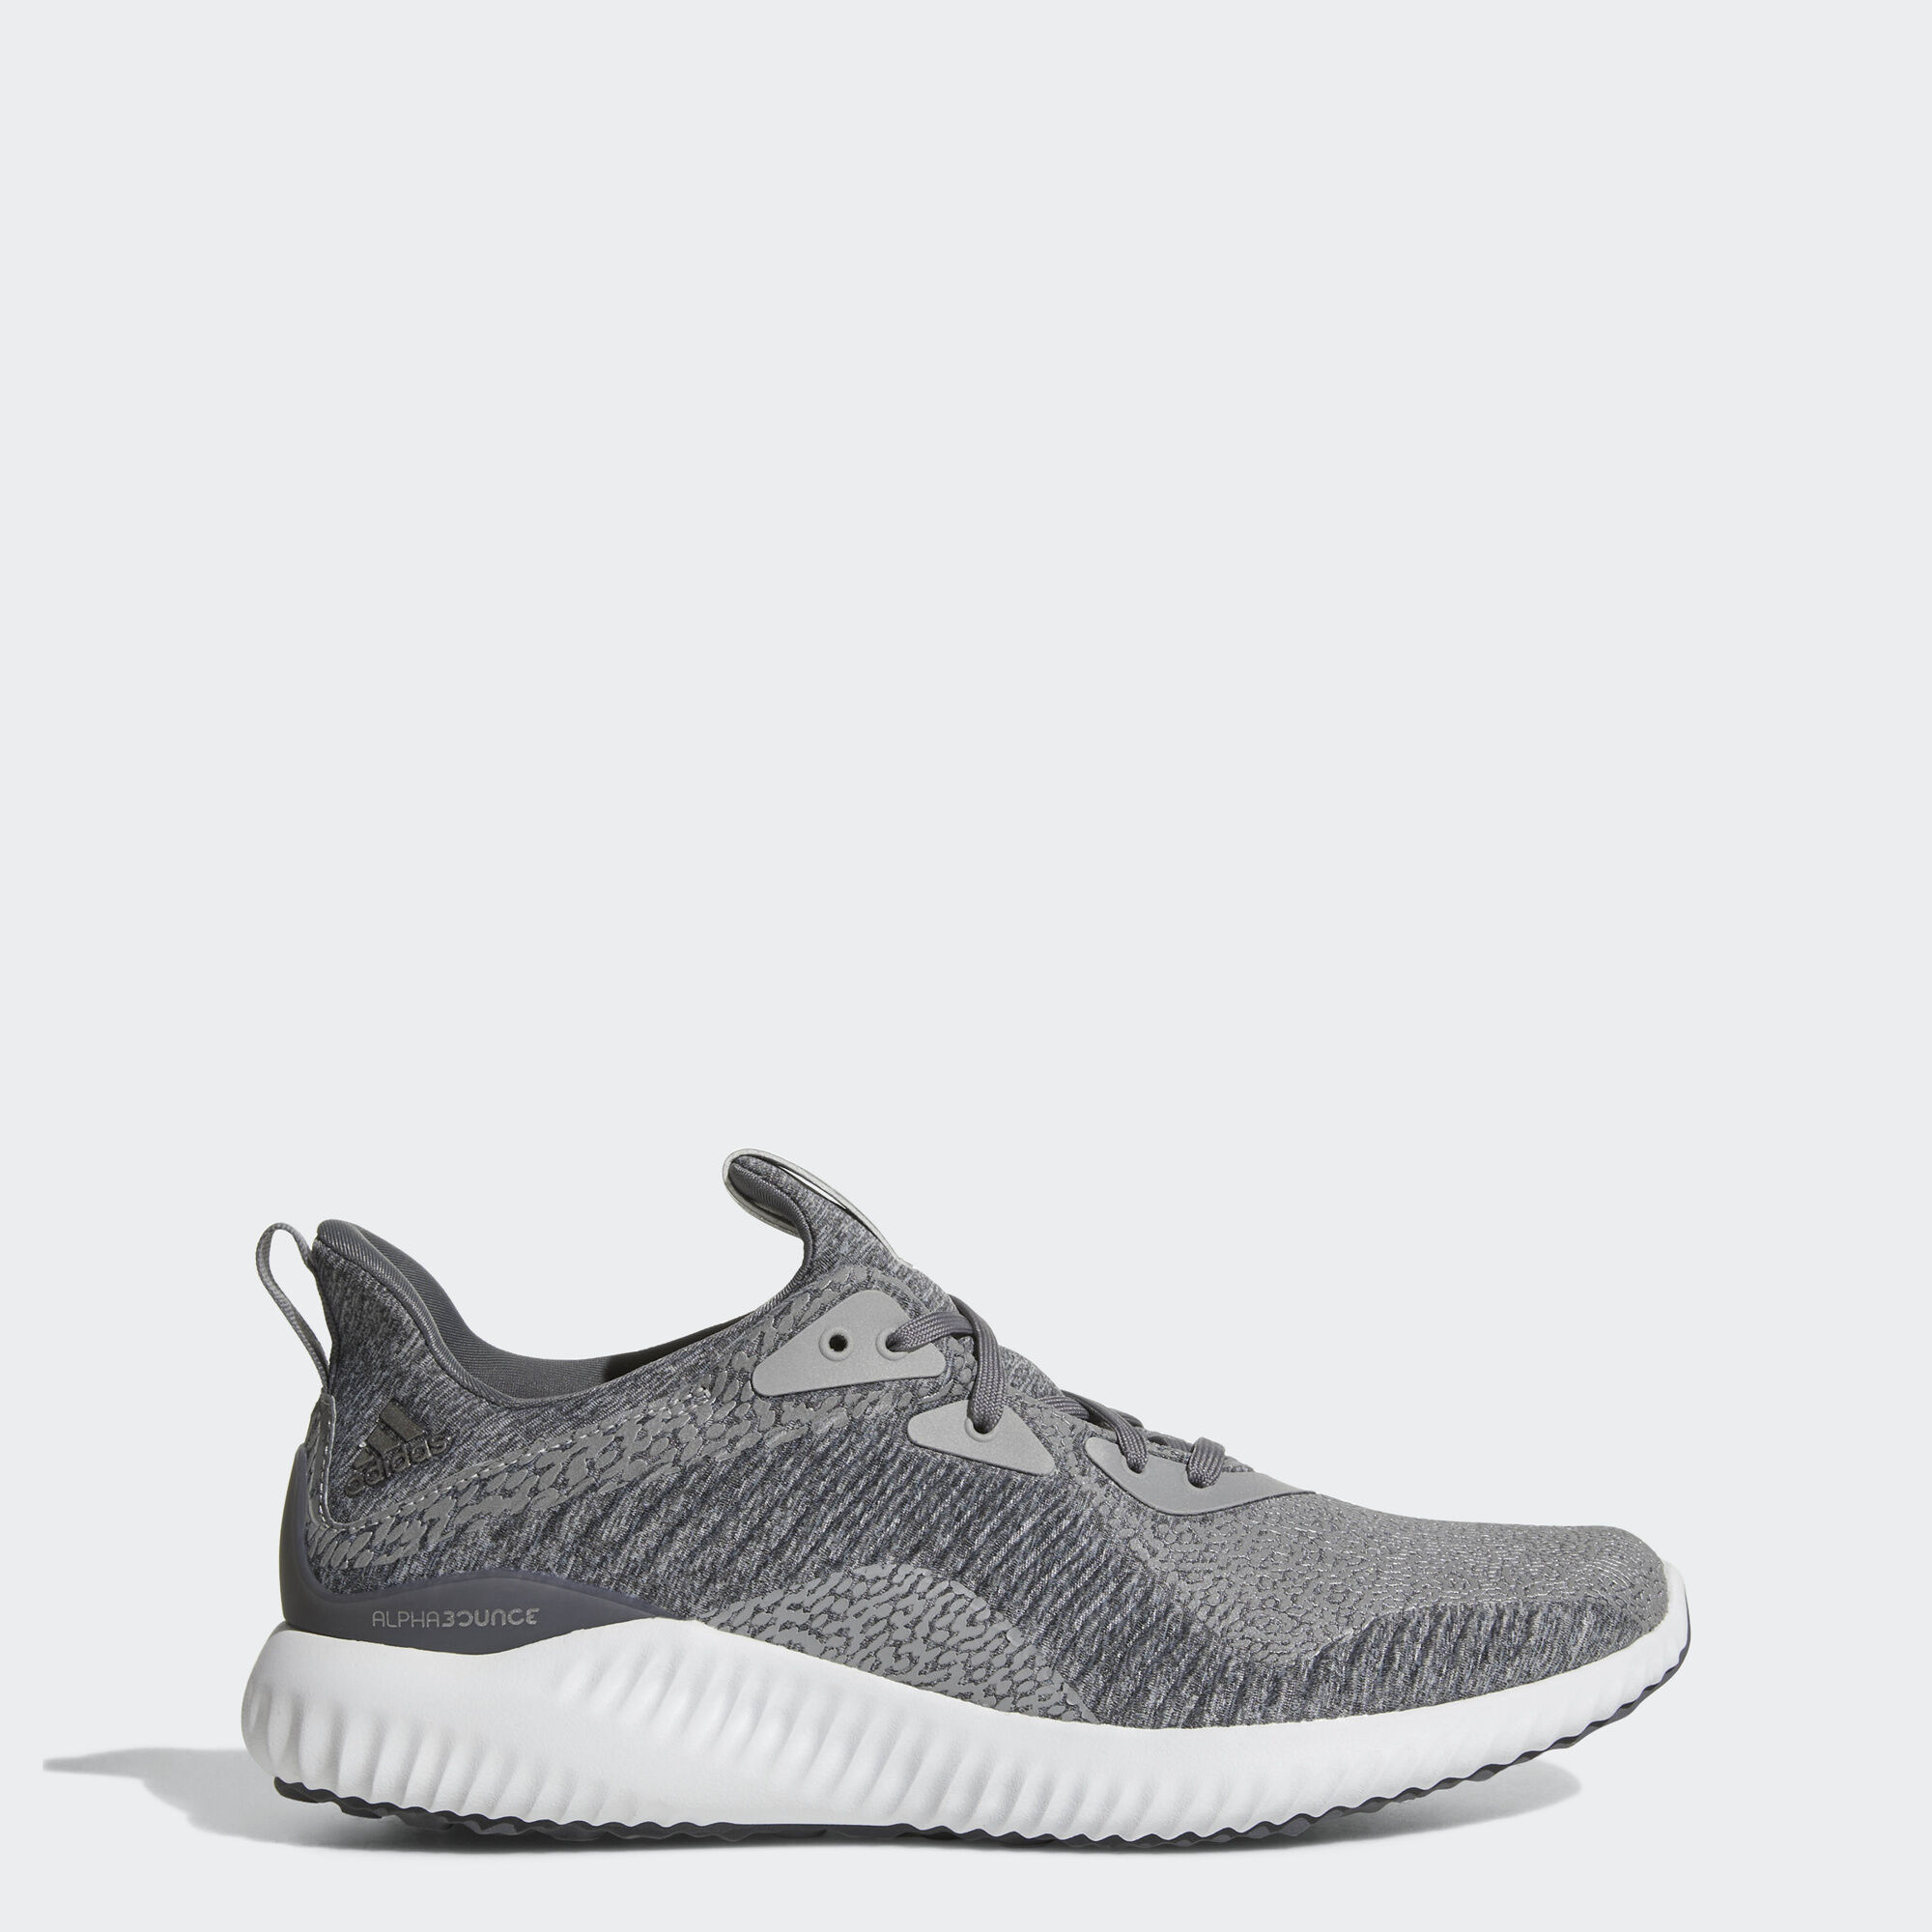 adidas alphabounce ams shoes medium grey heather running white by